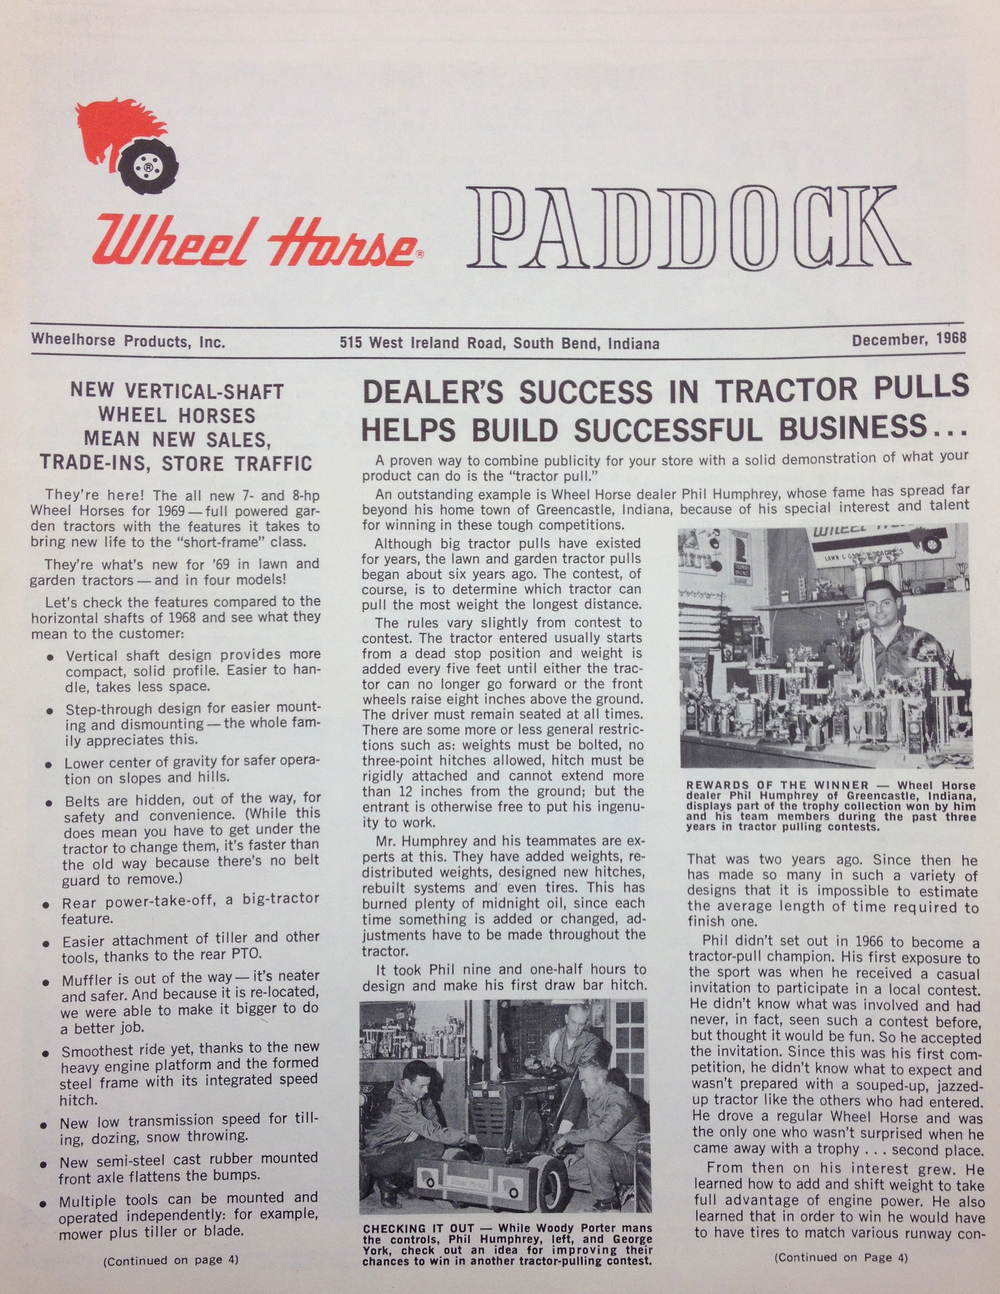 This was Humphreys' Wheel Horse featured article in Wheel Horse Paddock, the national Wheel Horse Dealer magazine at the time.